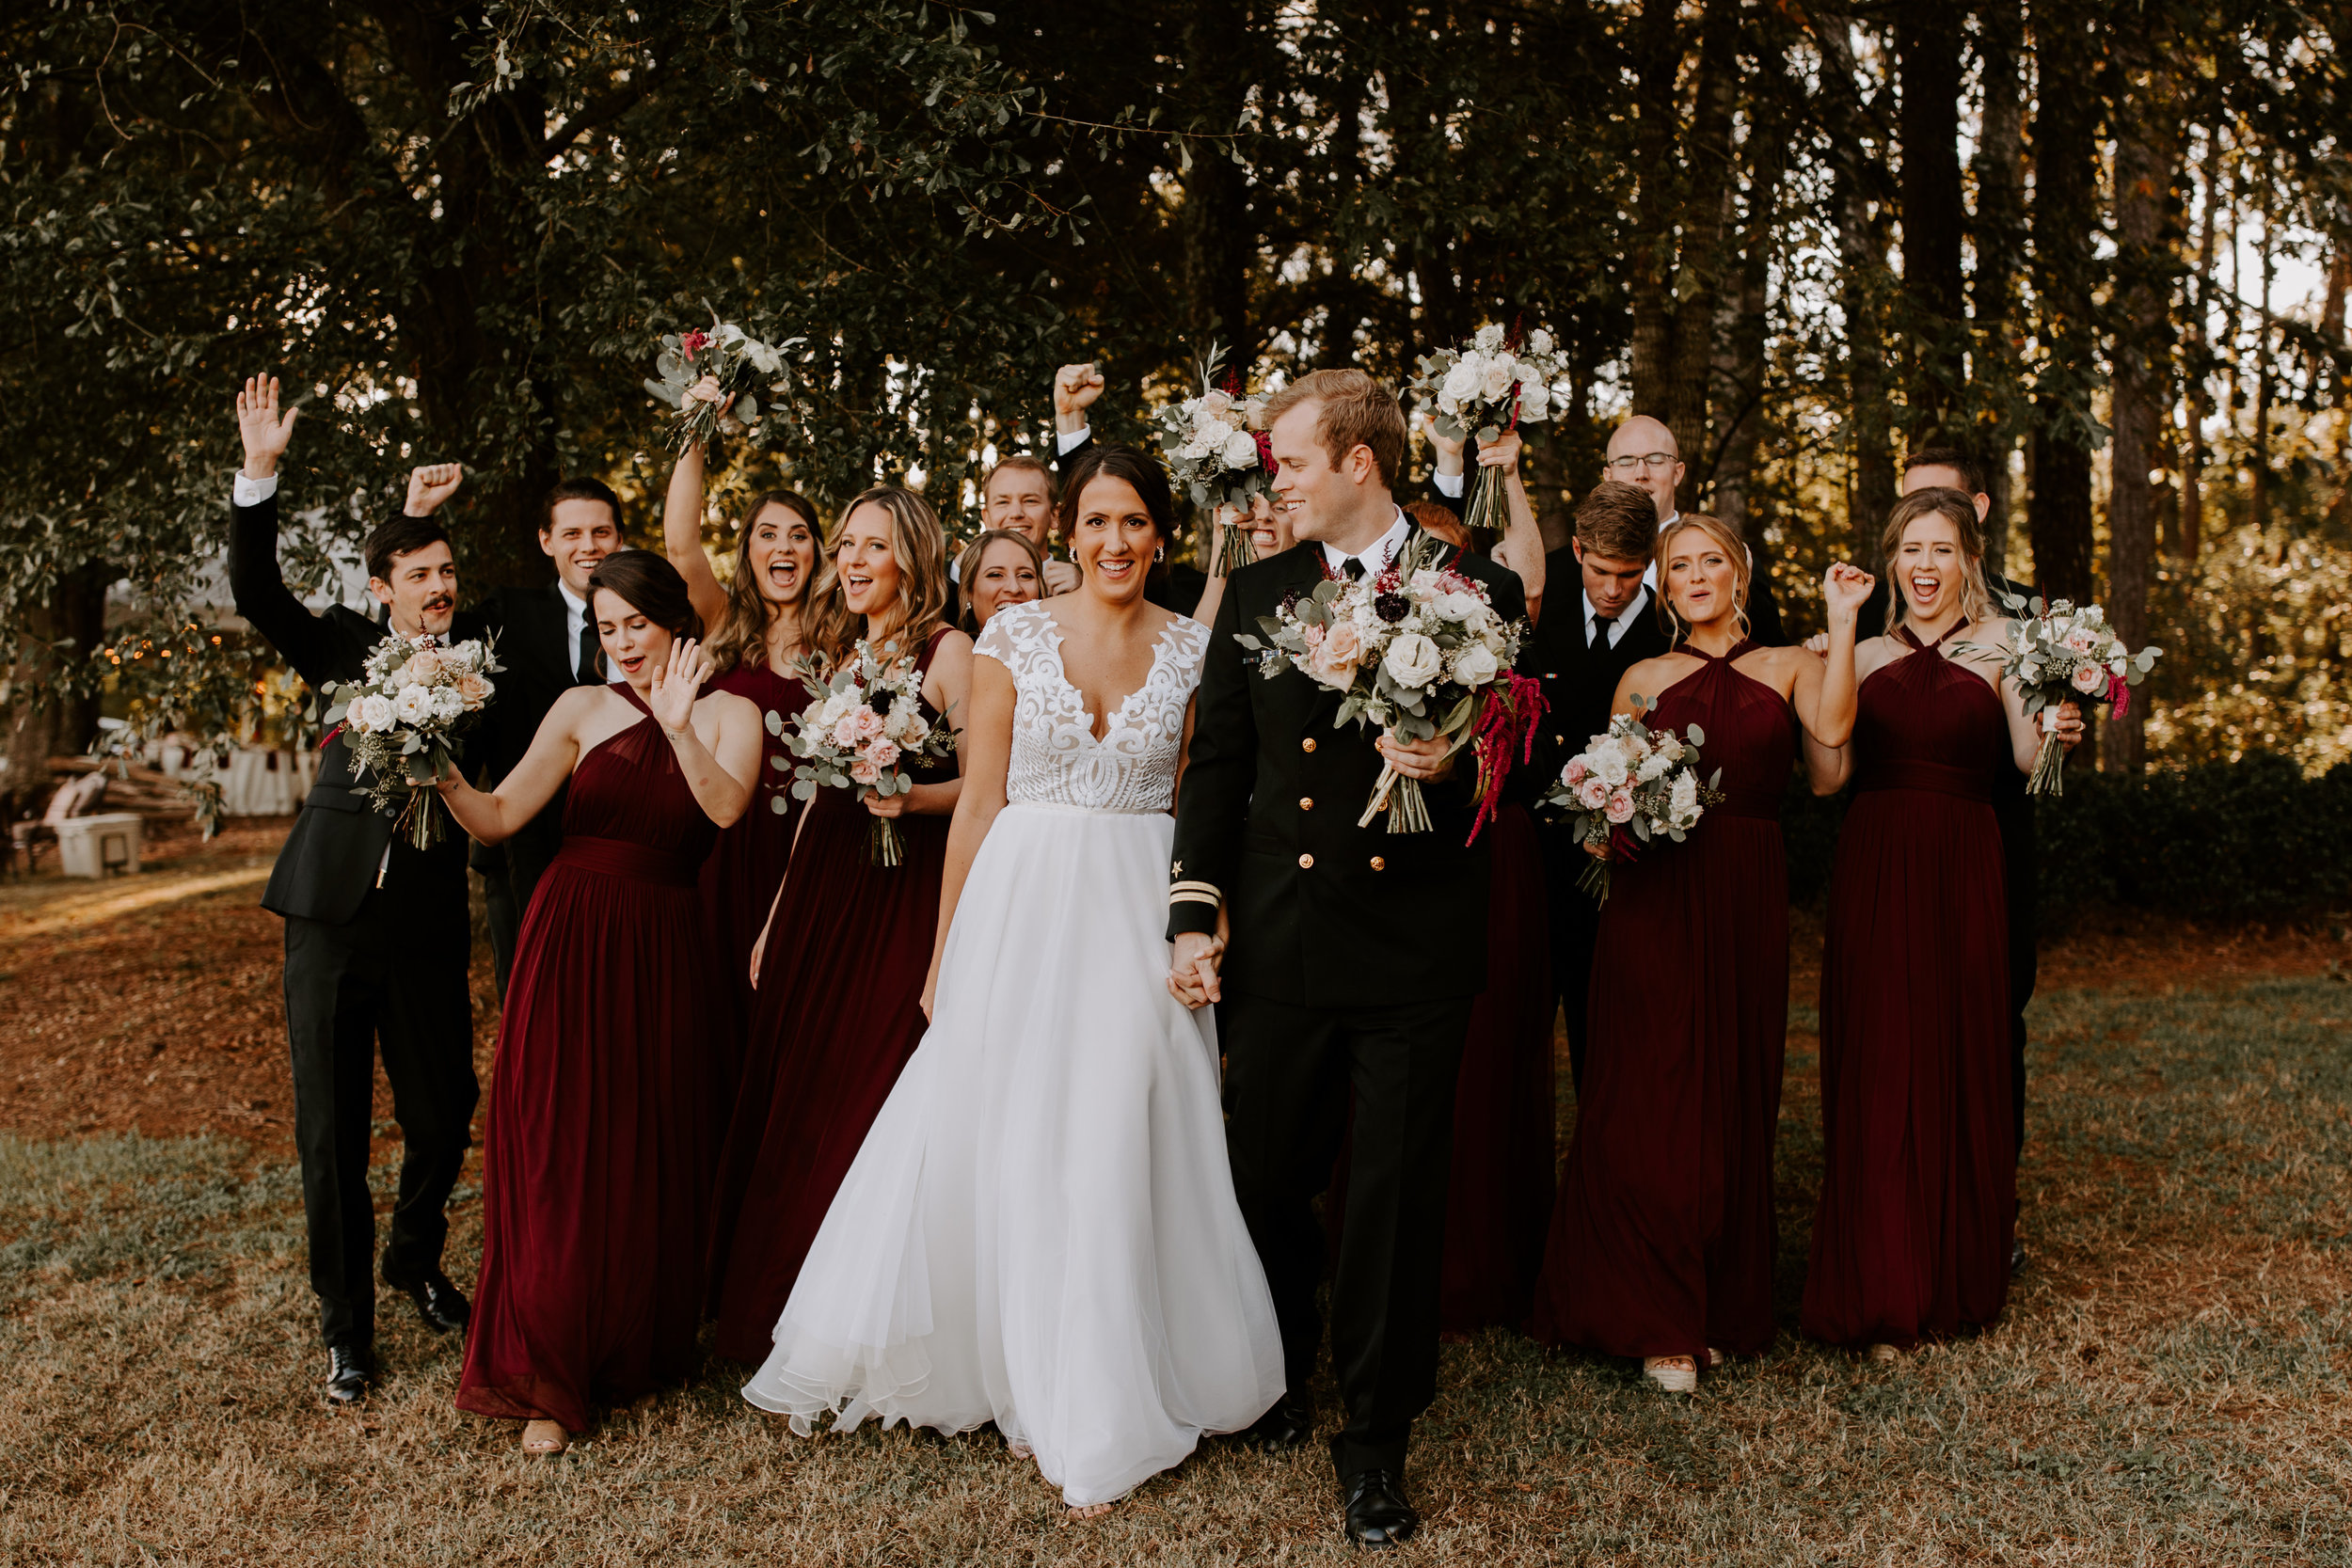 Savannah + Carter_Madalynn Young Photography-97.jpg